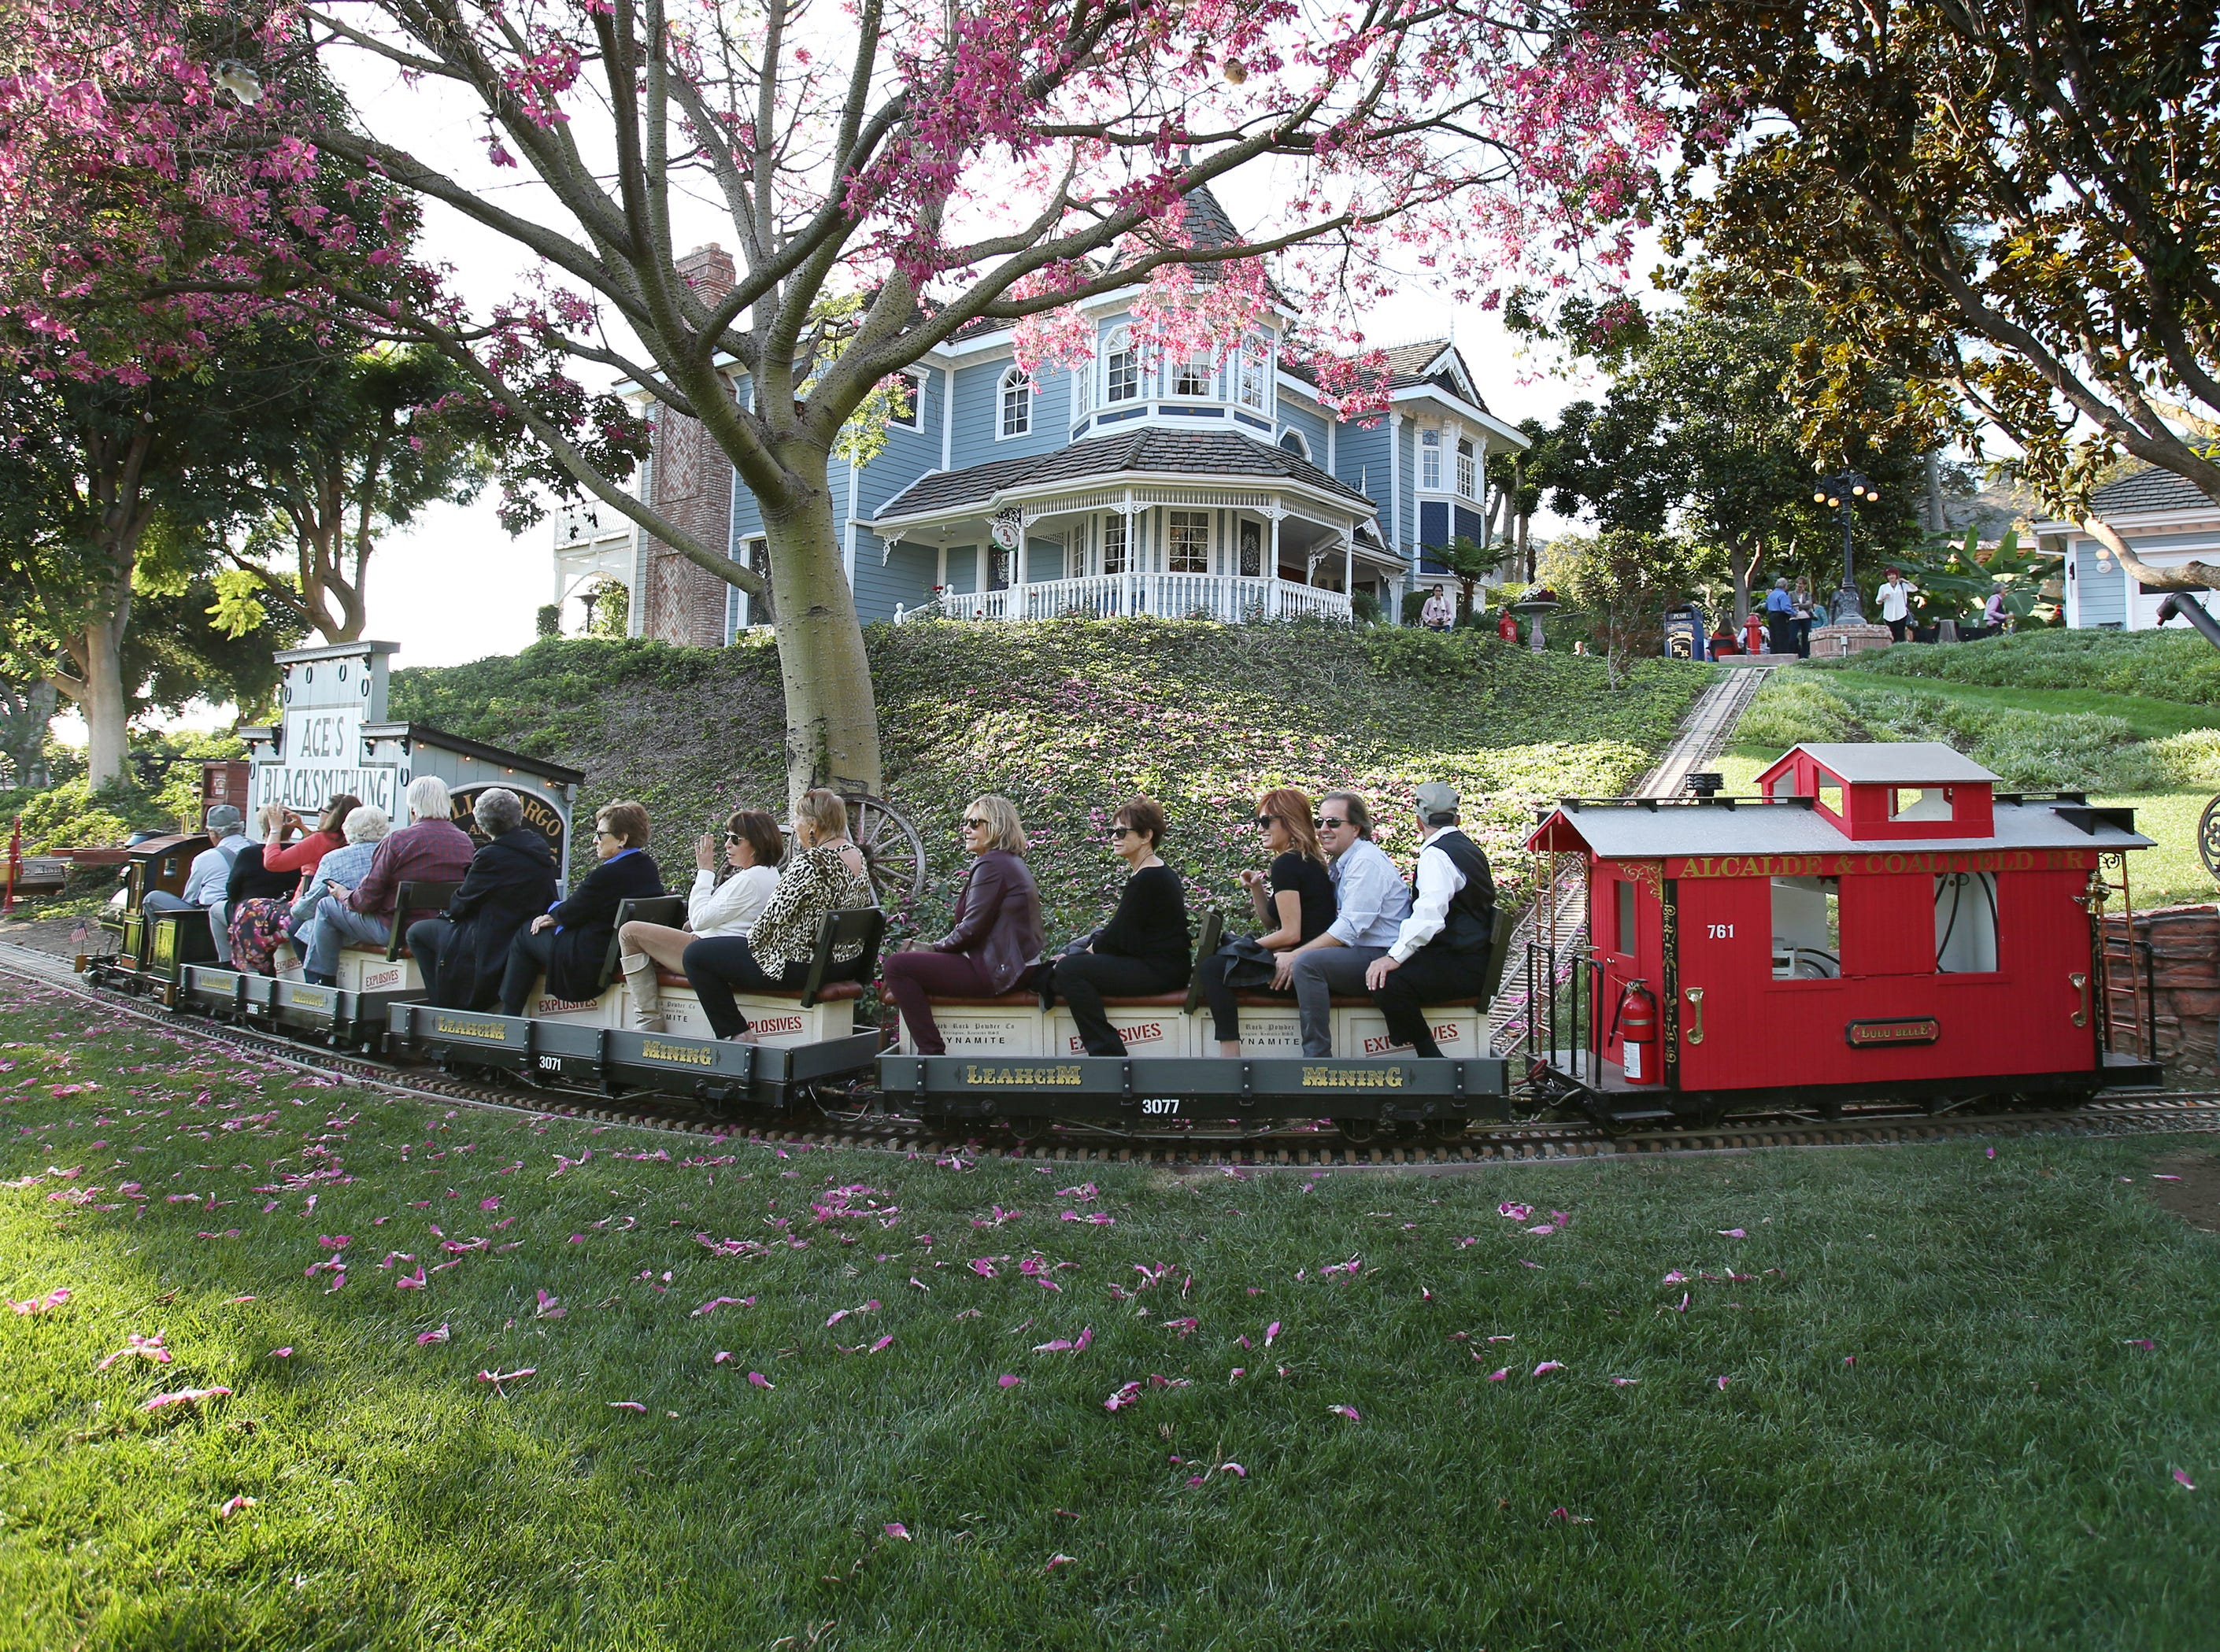 Guests from the California Museum of Art Thousand Oaks ride on a steam train as they tour the grounds of the Mike and Lorraine Newlon home in Santa Rosa Valley. Guests were also able to ride on a replica of Disneyland's Main Street Trolley that shared the same tracks as the train.